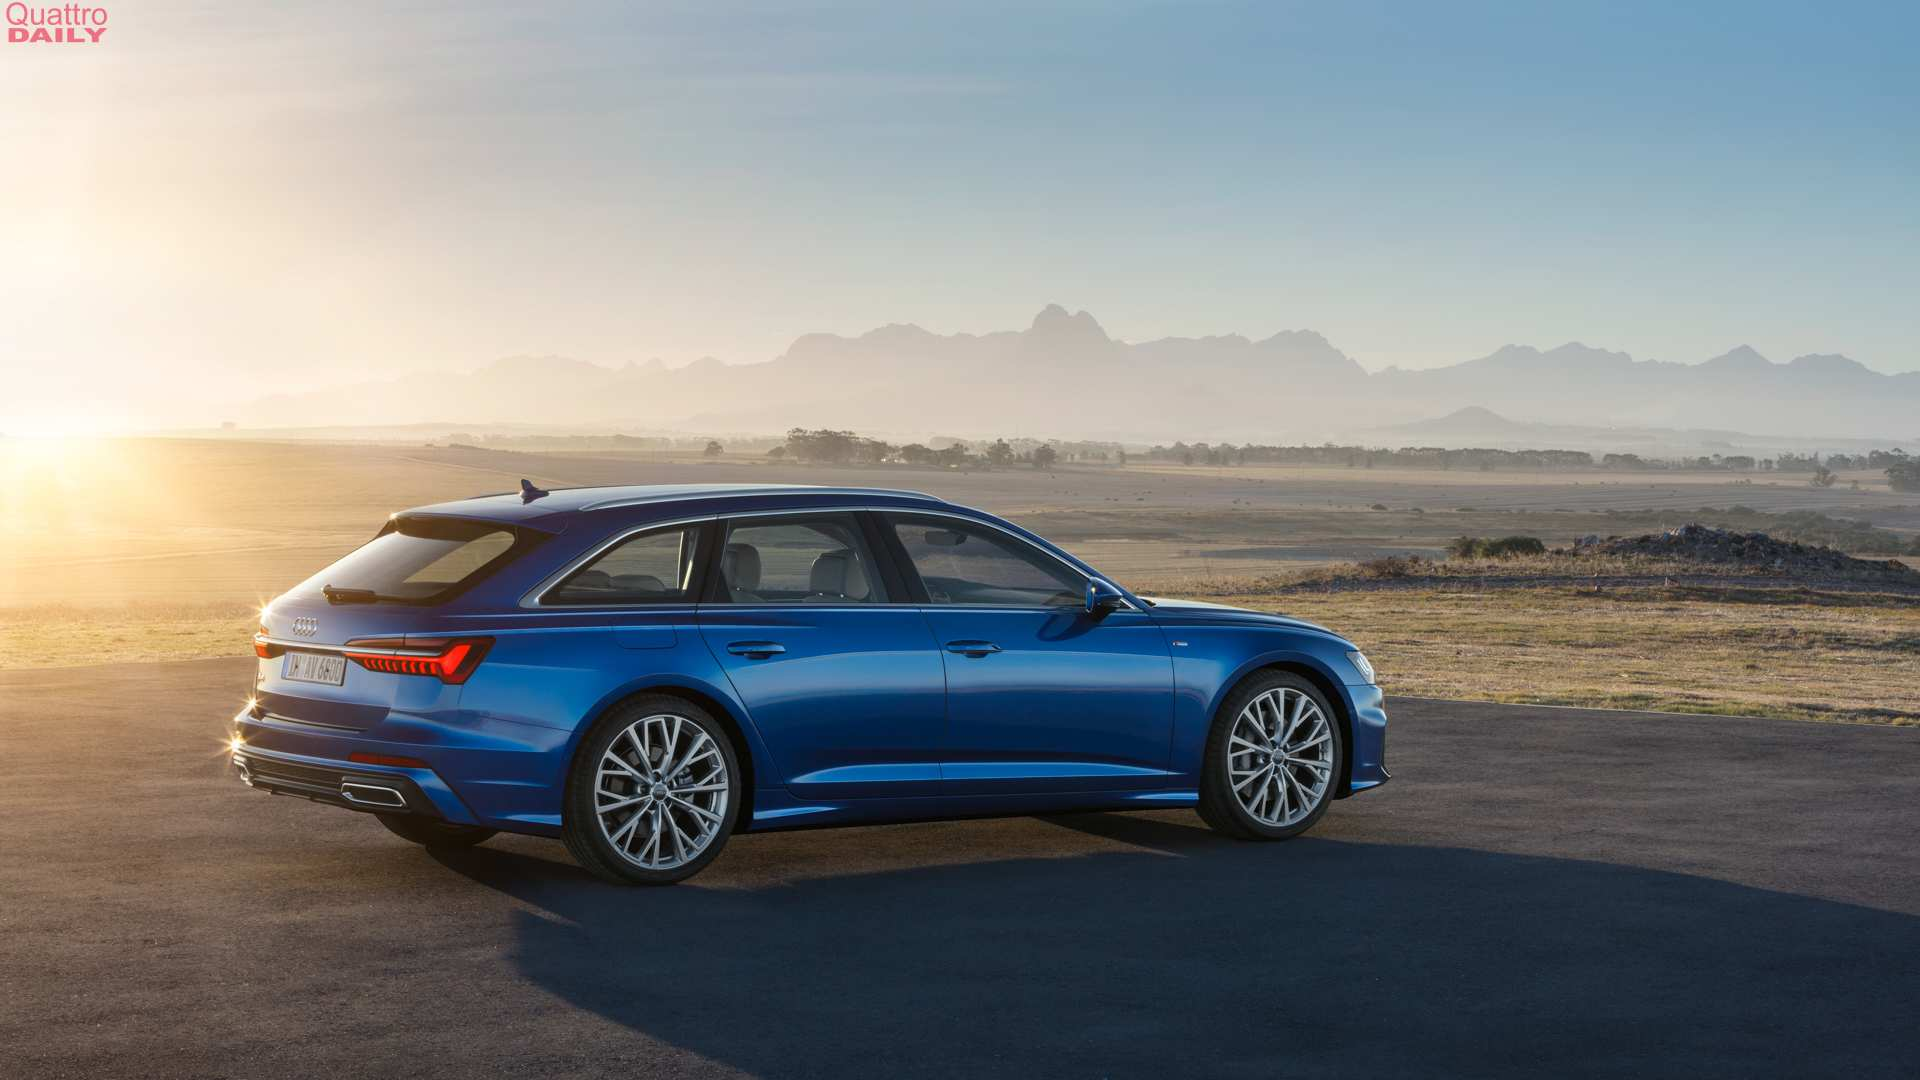 59 Gallery of 2020 Audi A6 2018 Reviews for 2020 Audi A6 2018